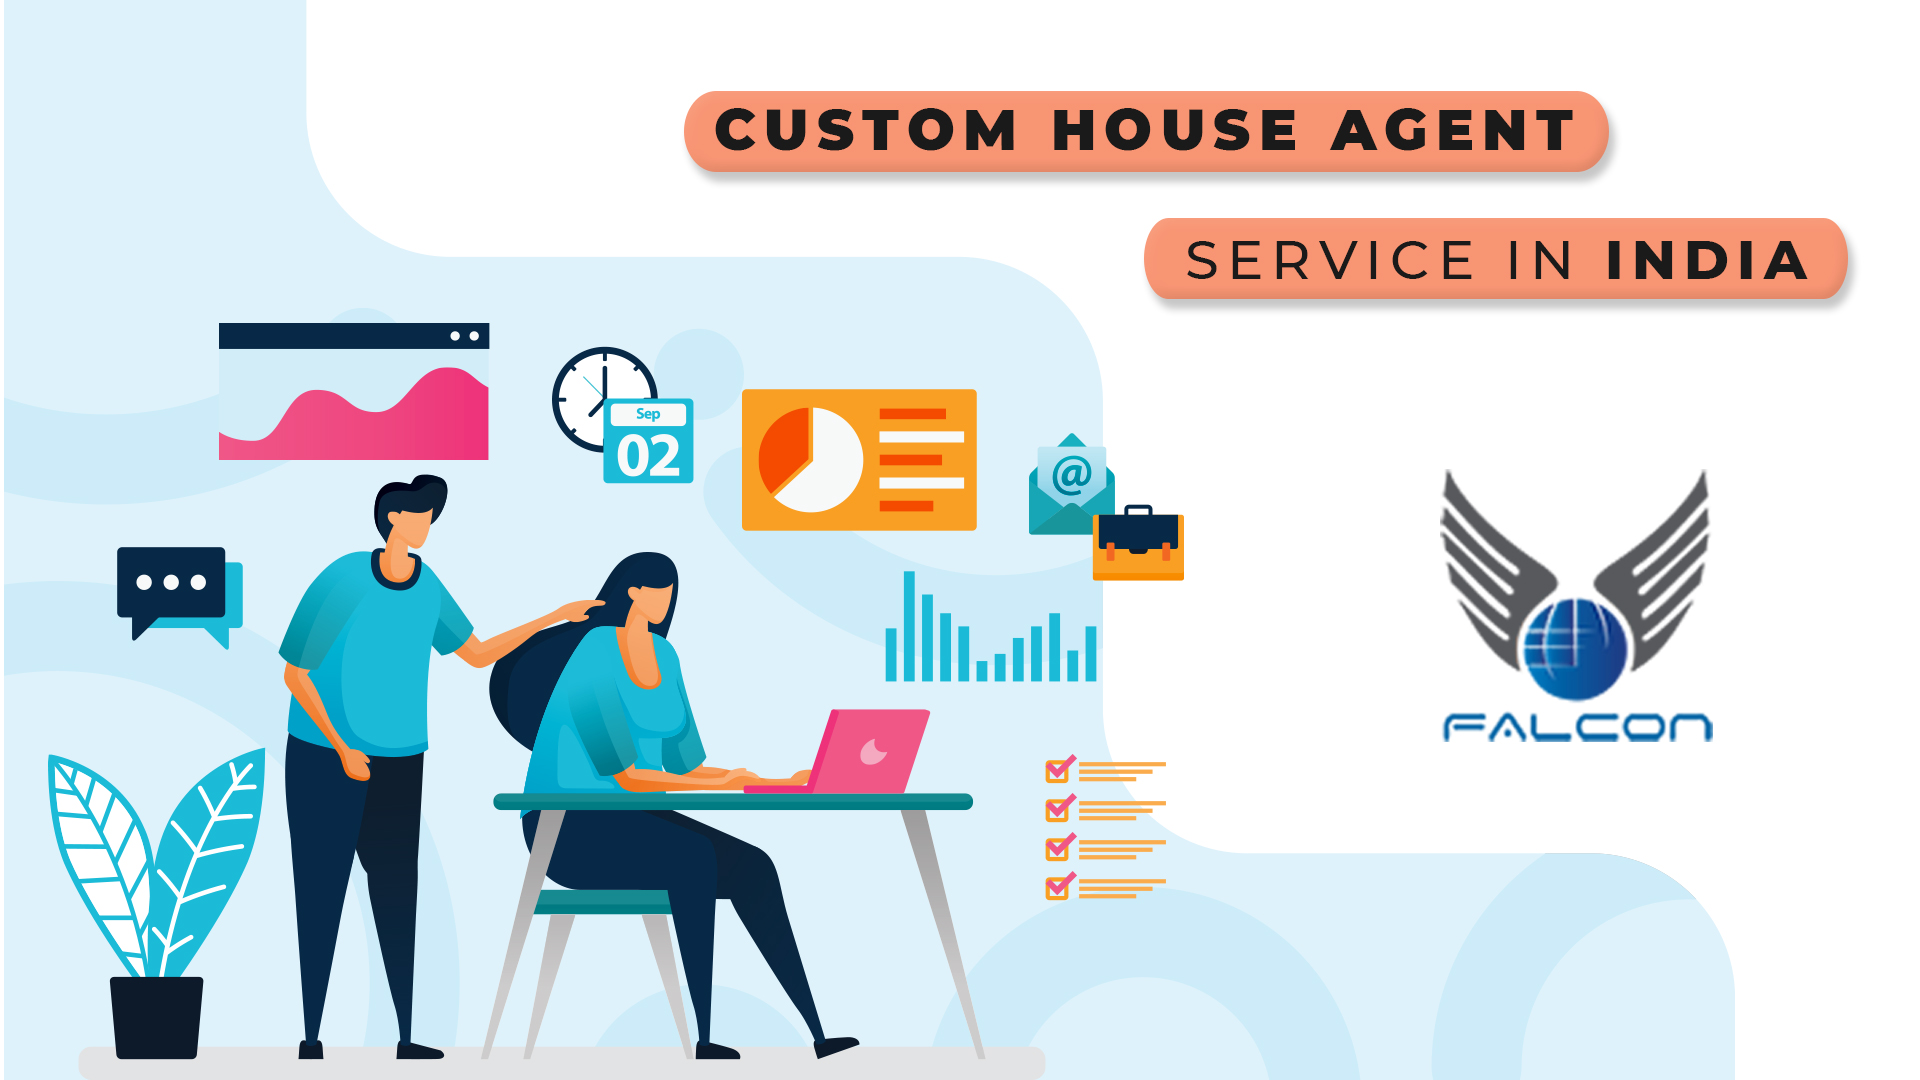 Custom House Agent Service in India